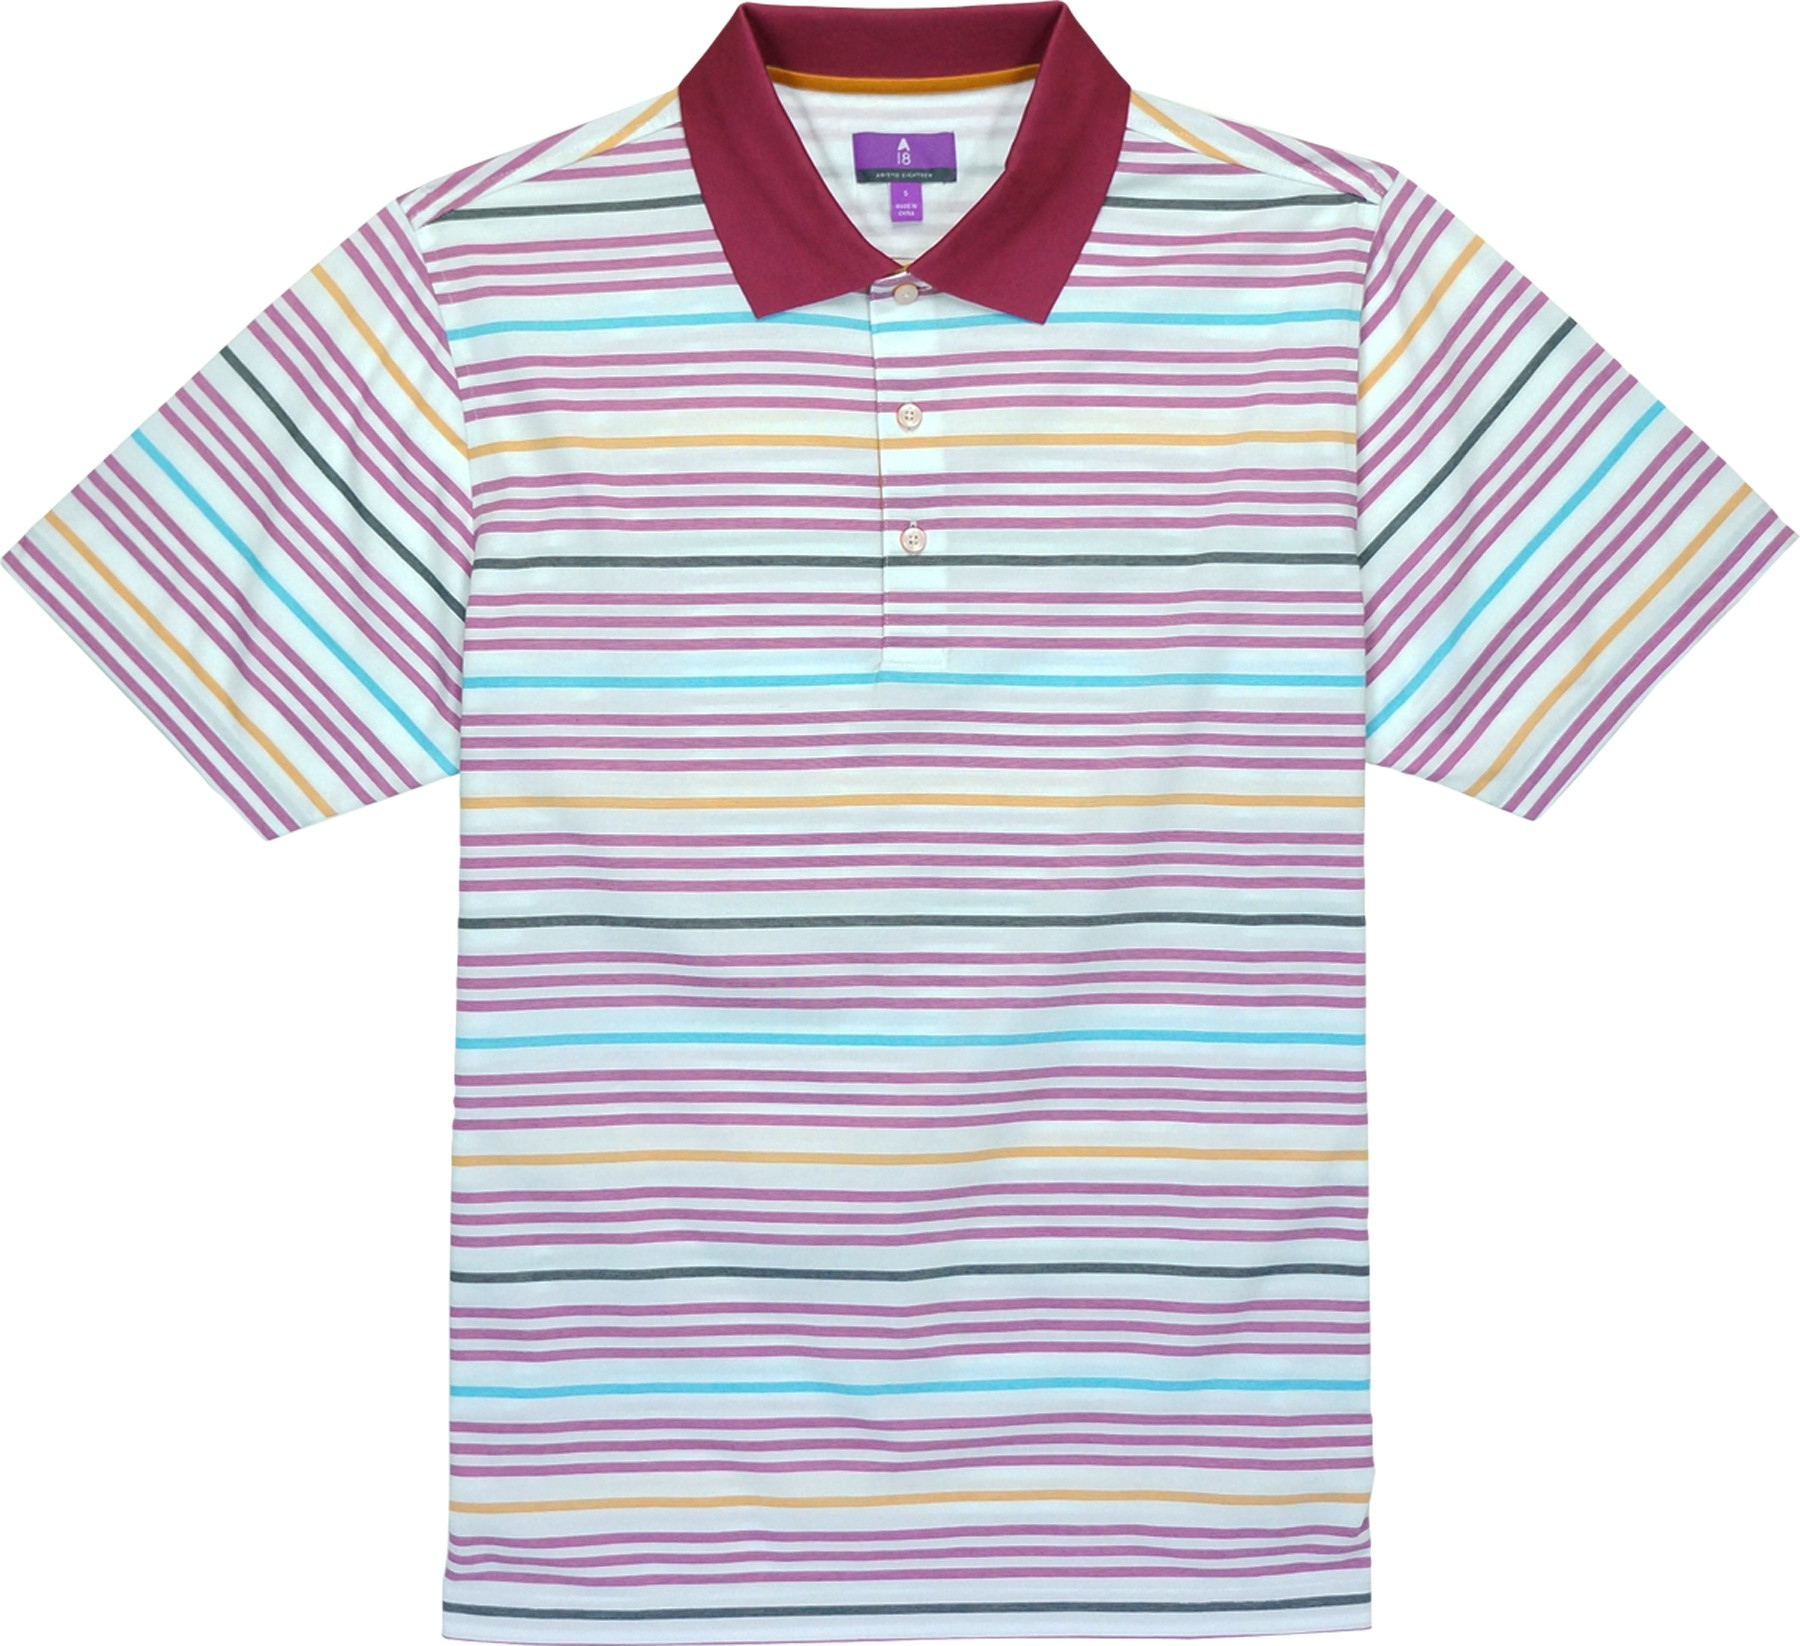 "A-18 ""Newport"" Multi Stripe Polo Shirt - Hybrid-Tech"